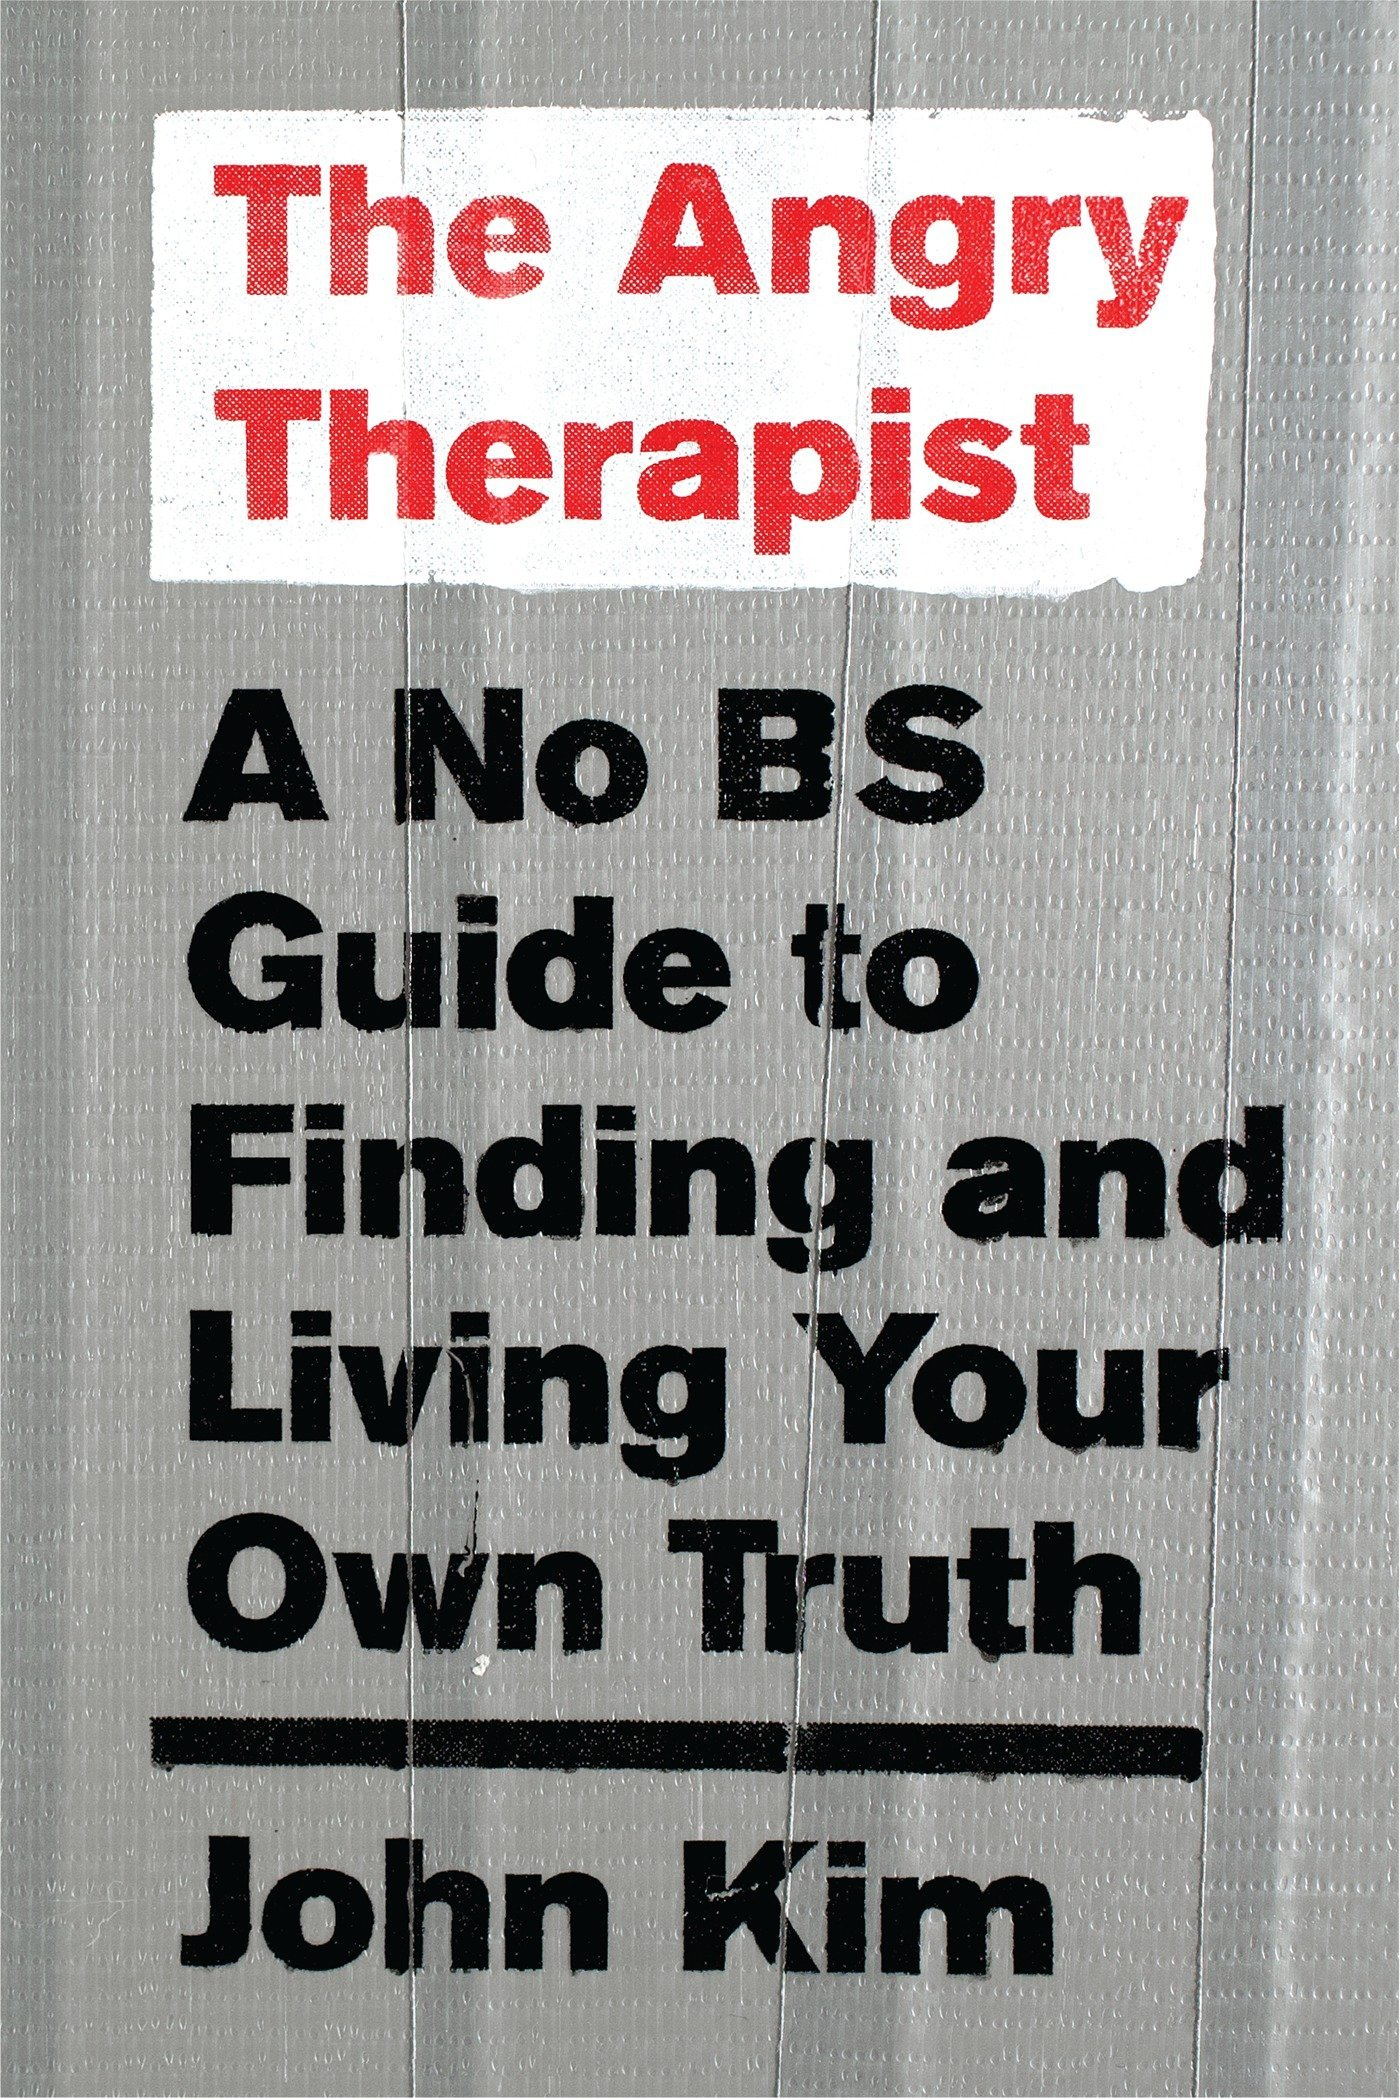 The Angry Therapist: A No BS Guide to Finding and Living